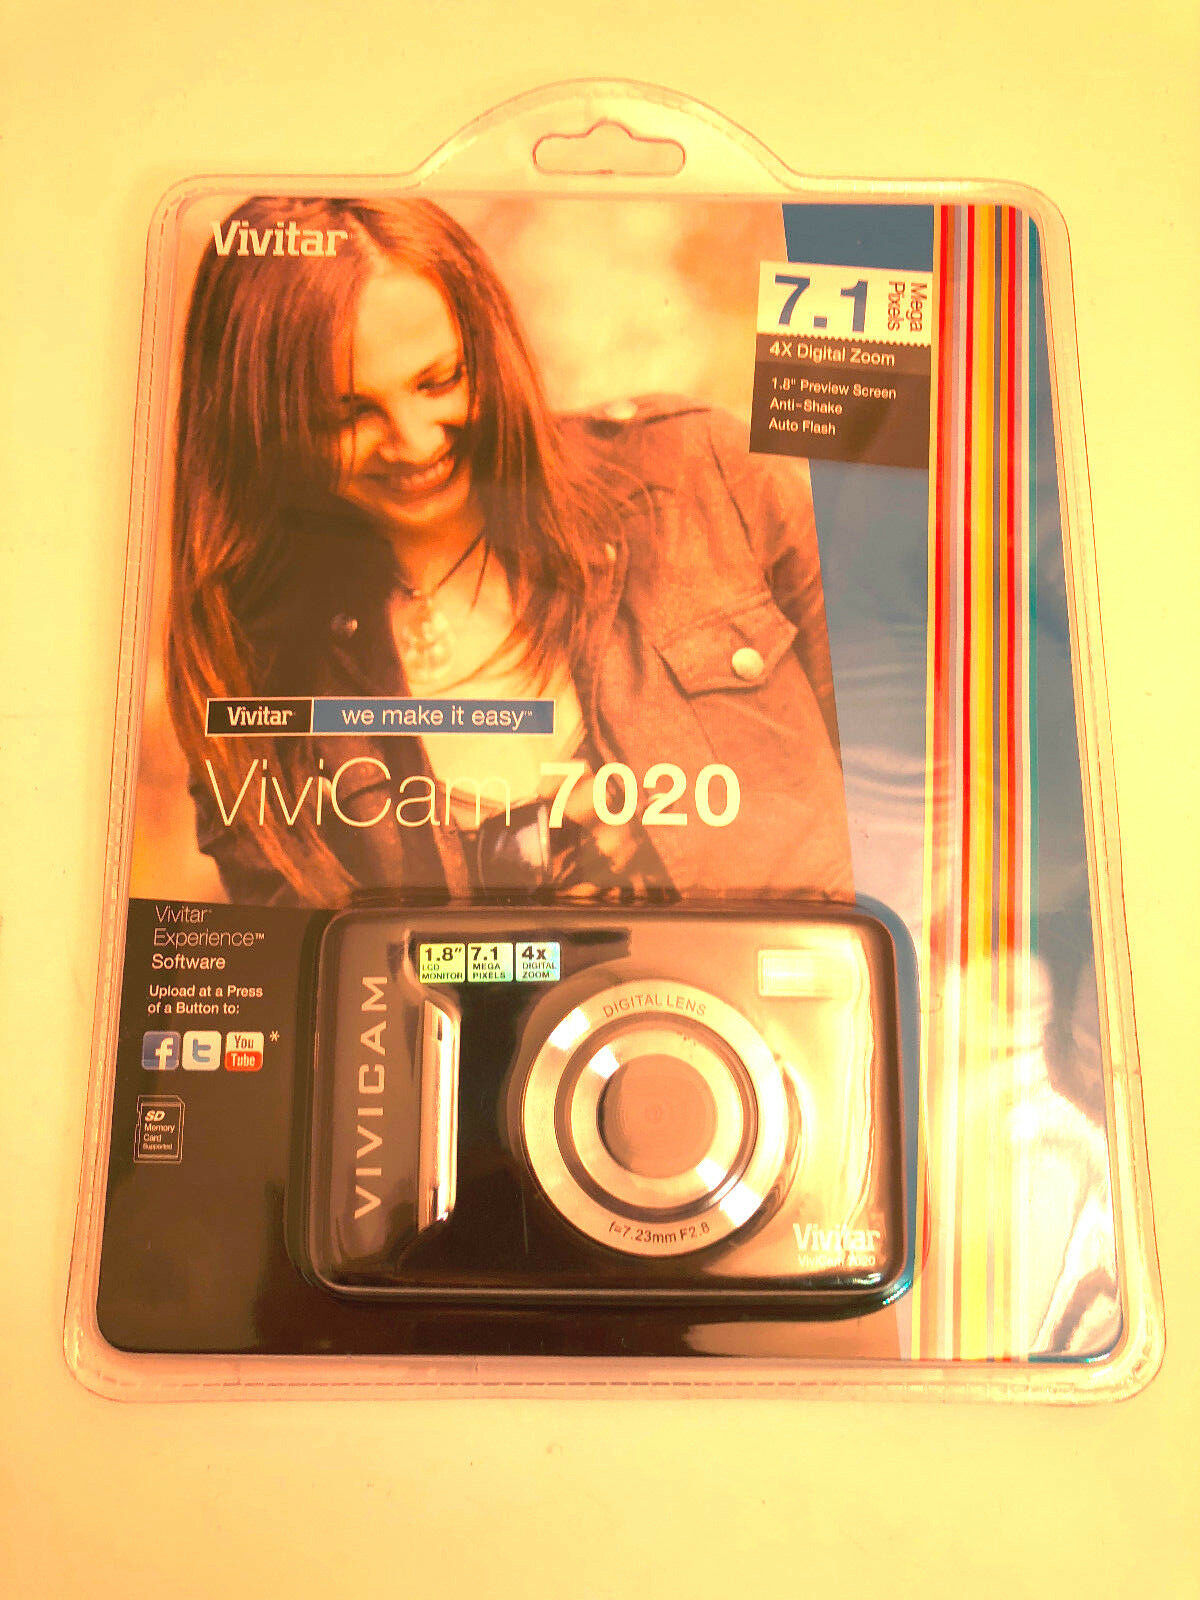 Primary image for Vivitar Vivicam 7020 - Black